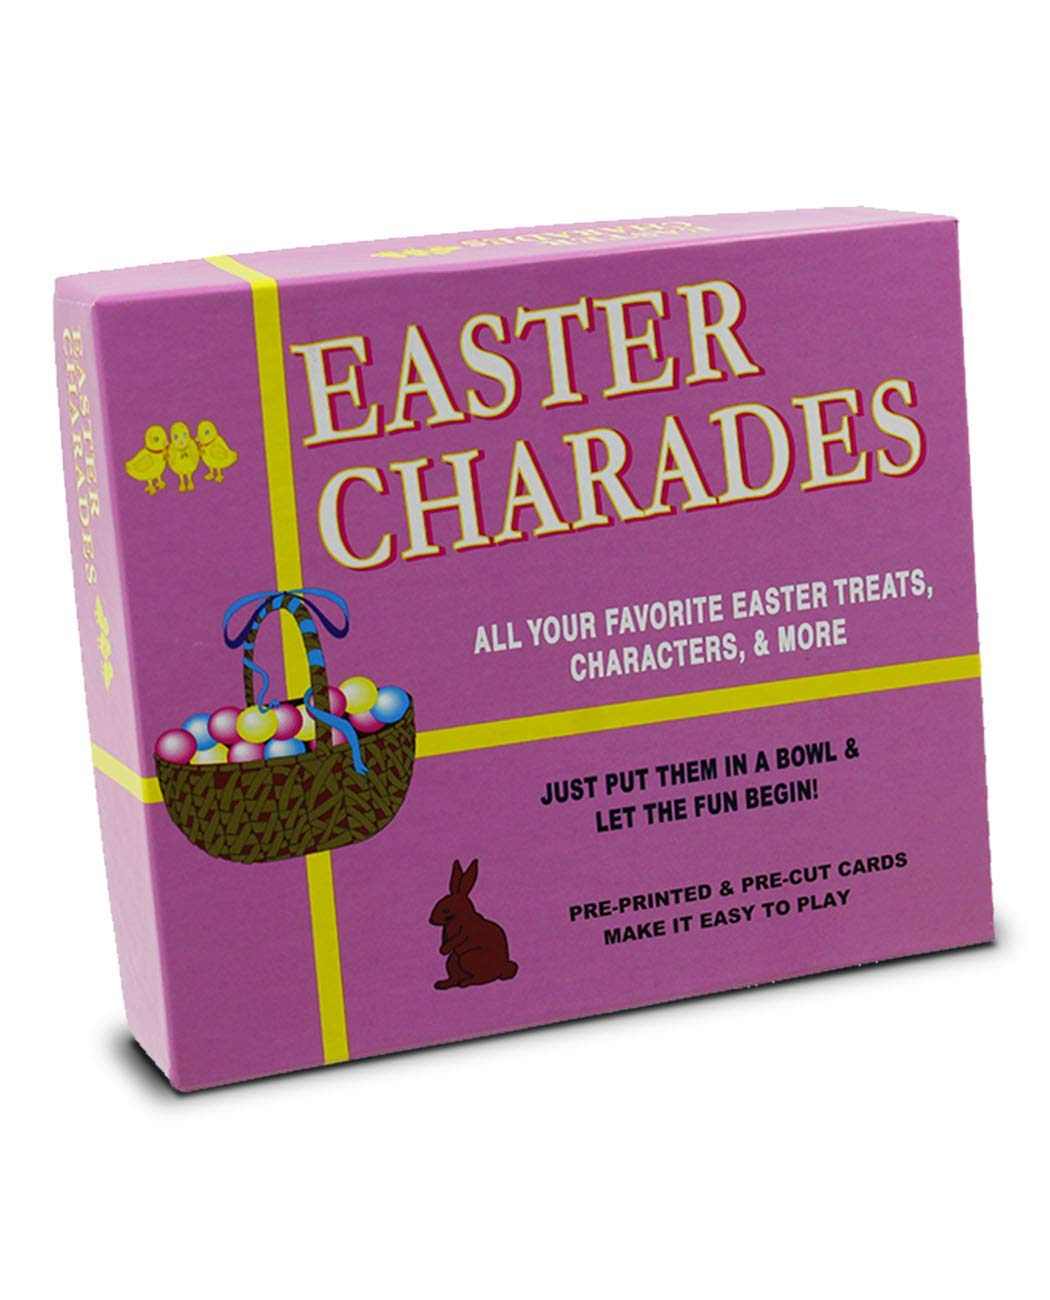 Easter Charades The Original Game Perfect For Your Party Games Makes A Great Ba